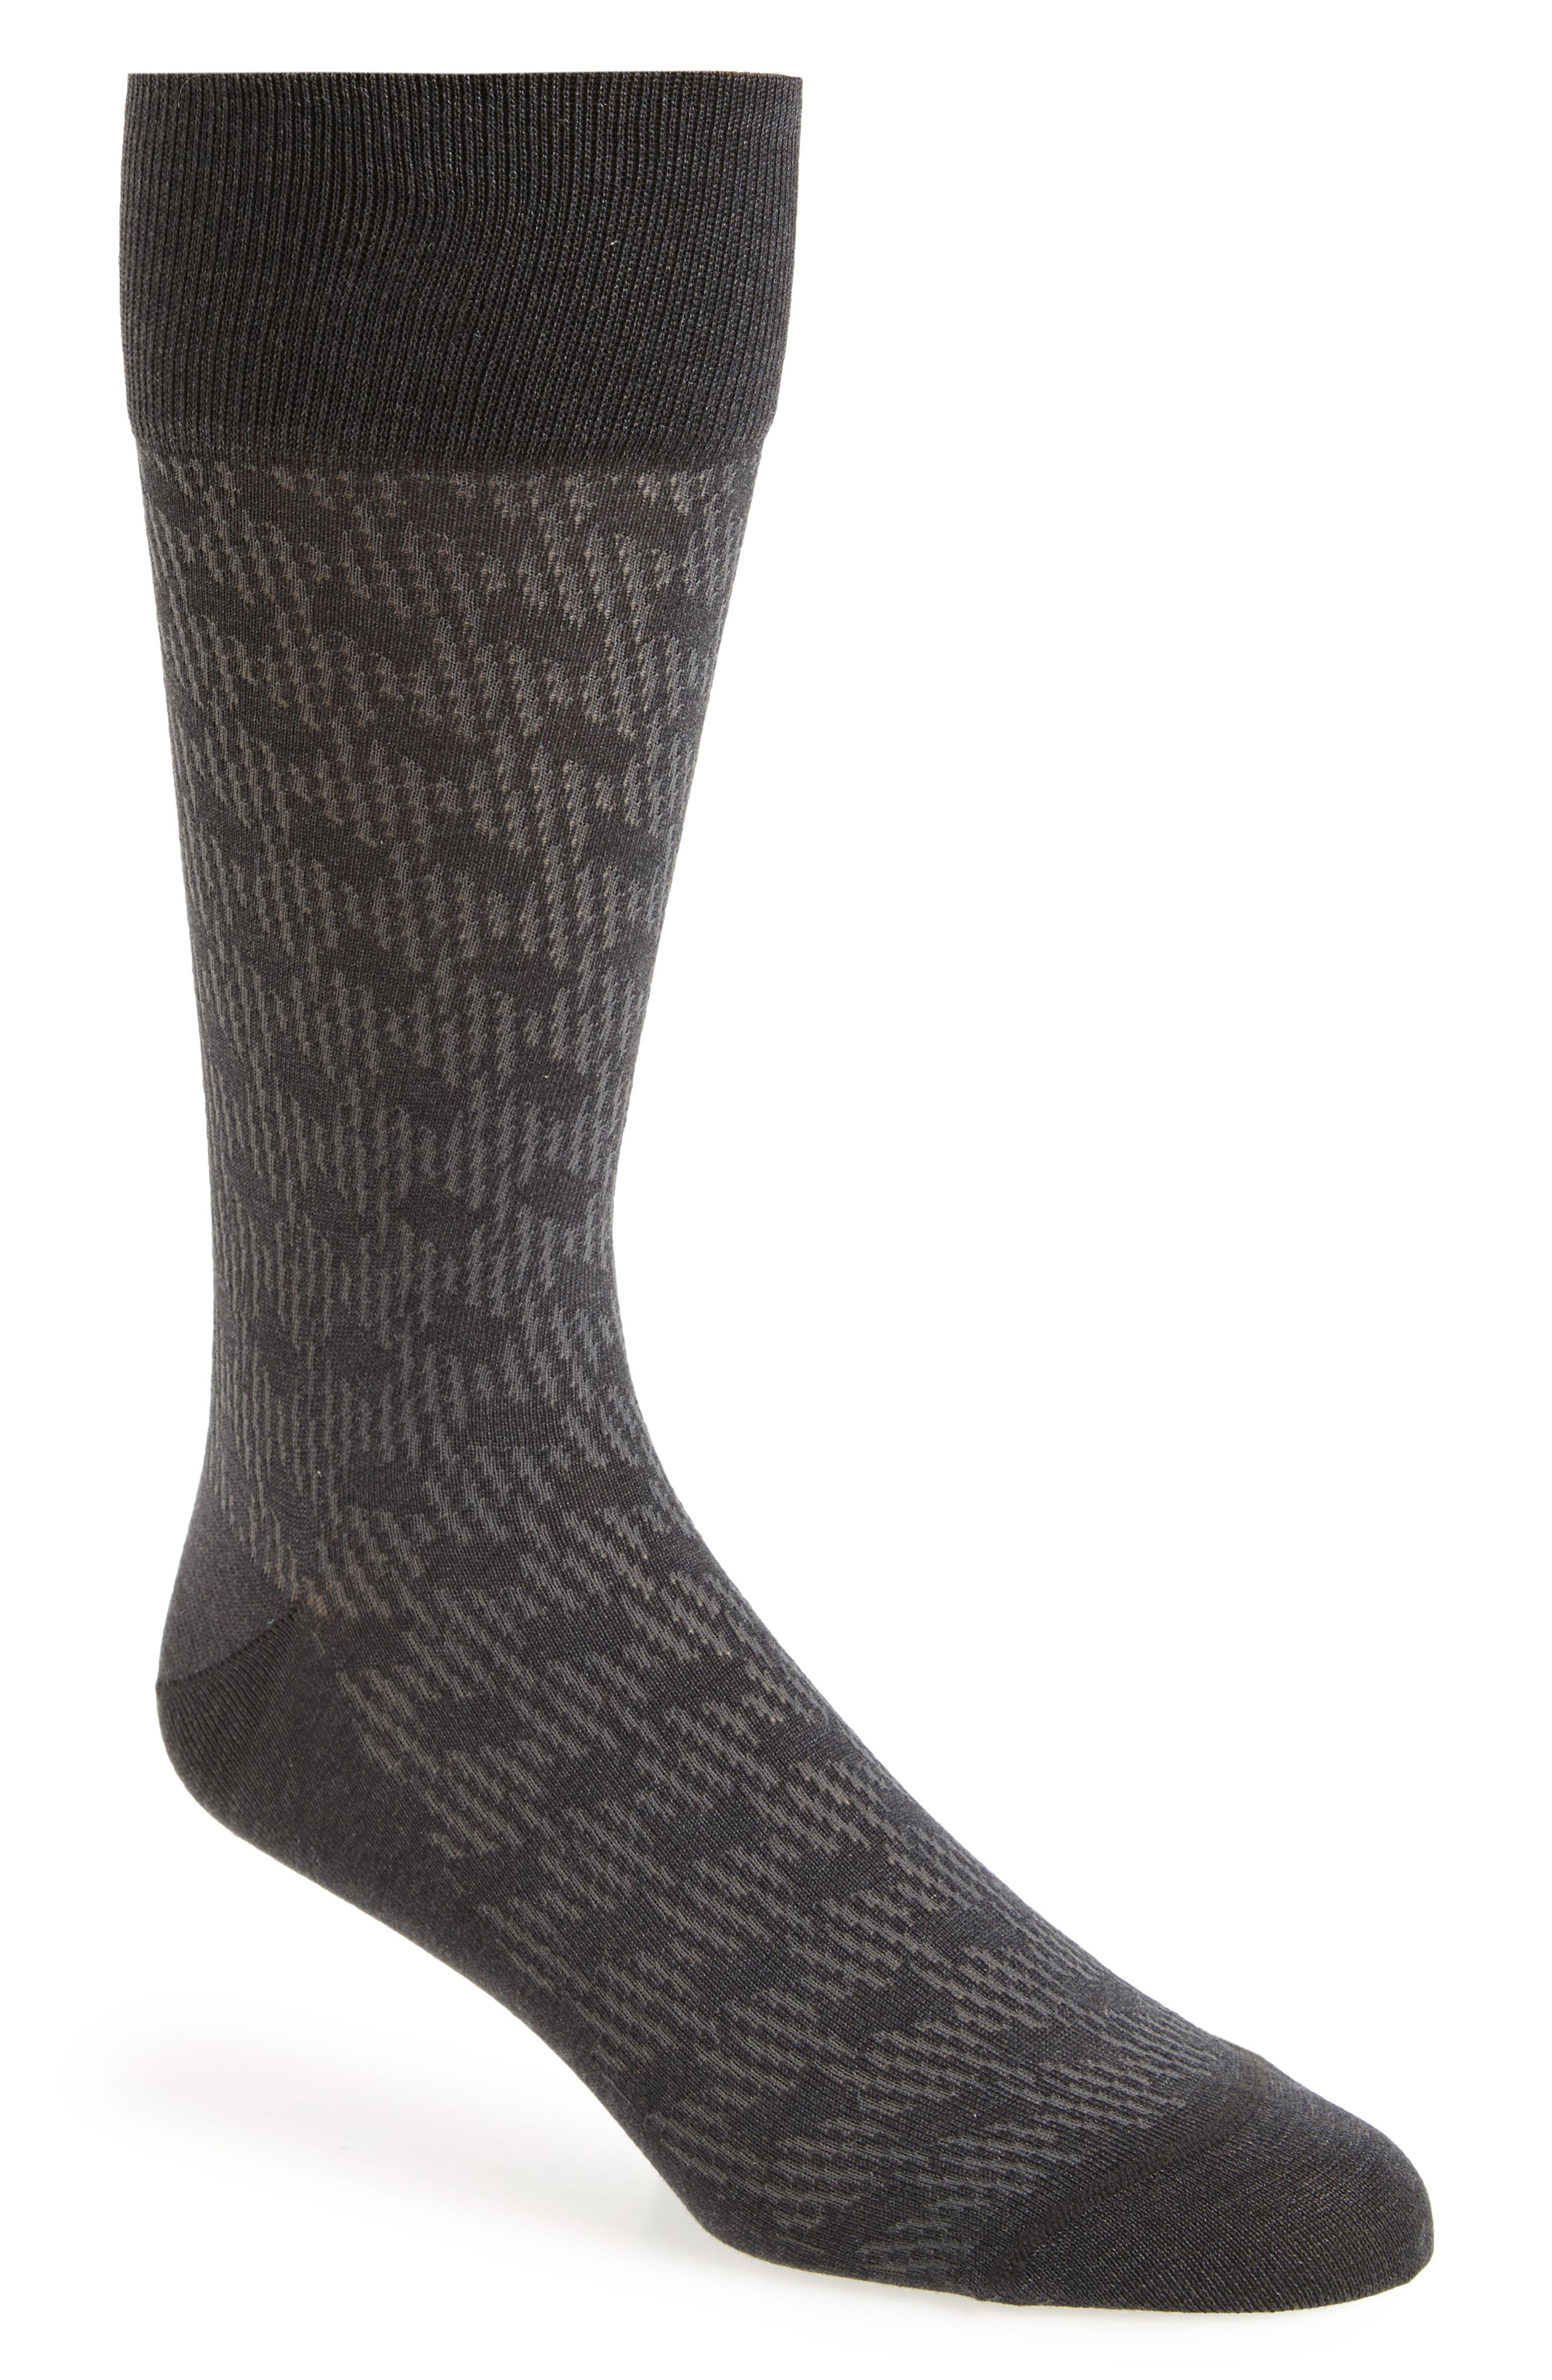 Shadow Rhombus Socks,                         Main,                         color, Charcoal Heather